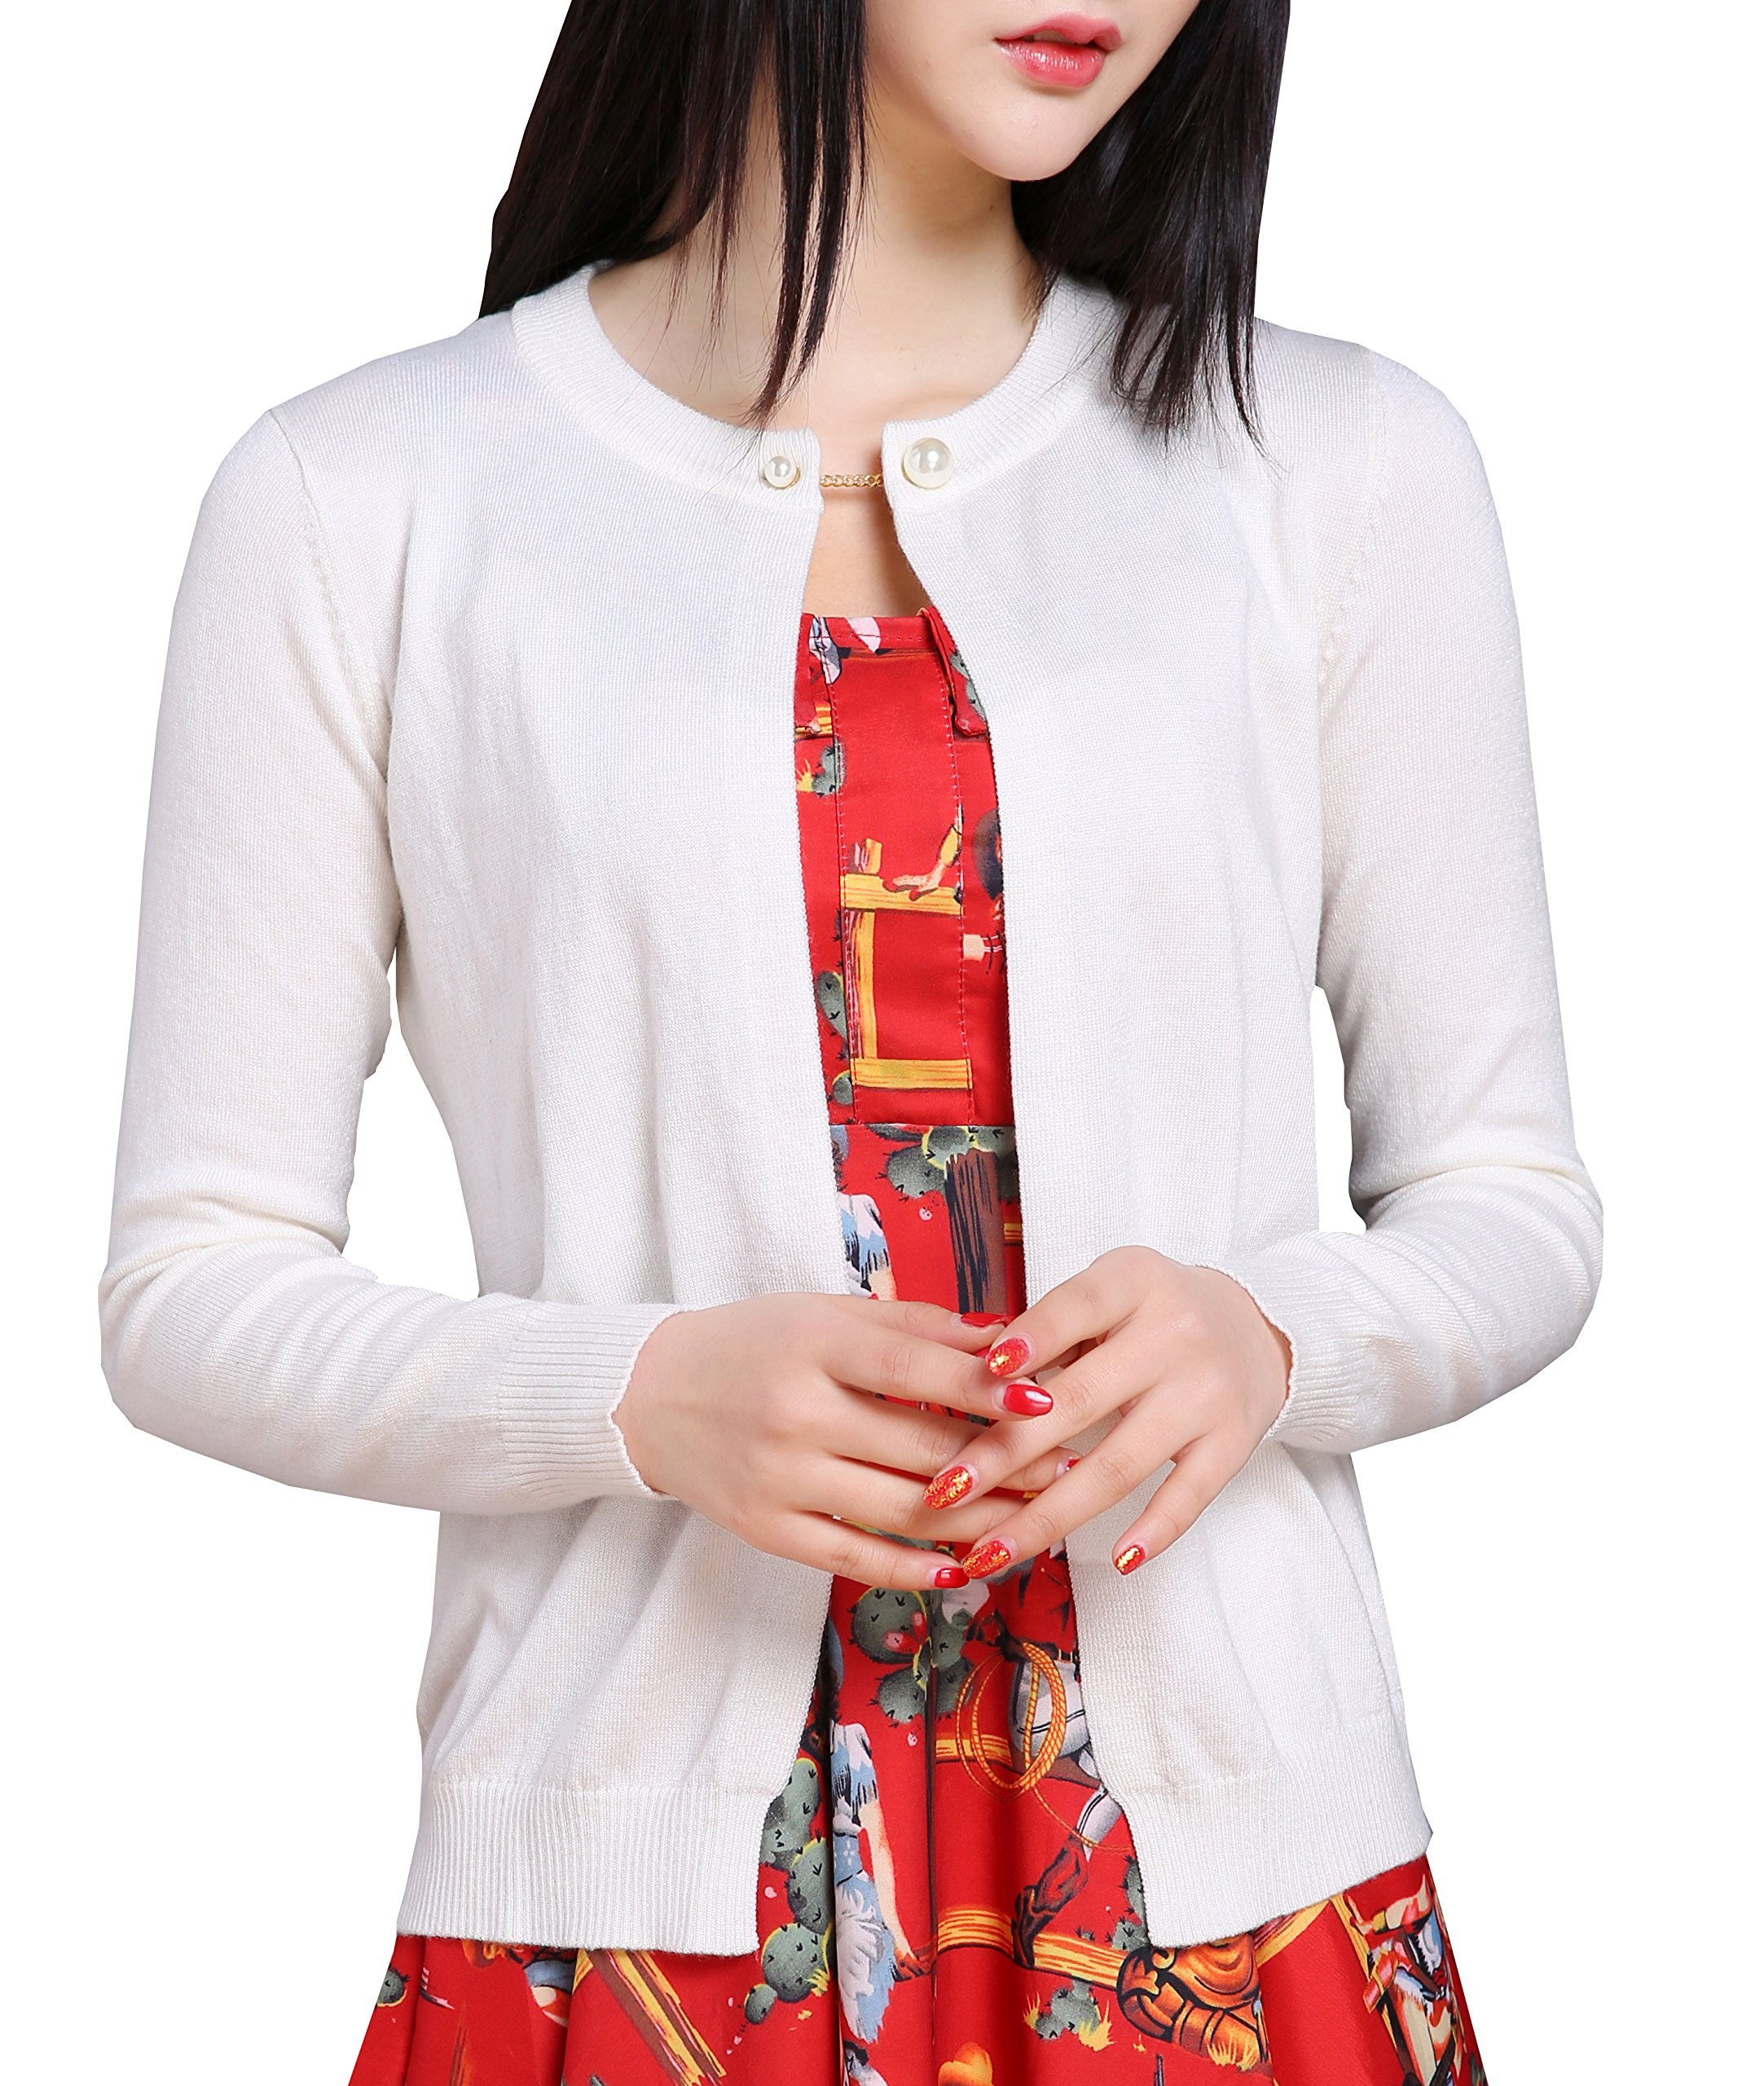 NianEr Womens Summer Cotton Plus Size Knitted Cardigan Ladies Thin Cardigans,Beige,XX-Large